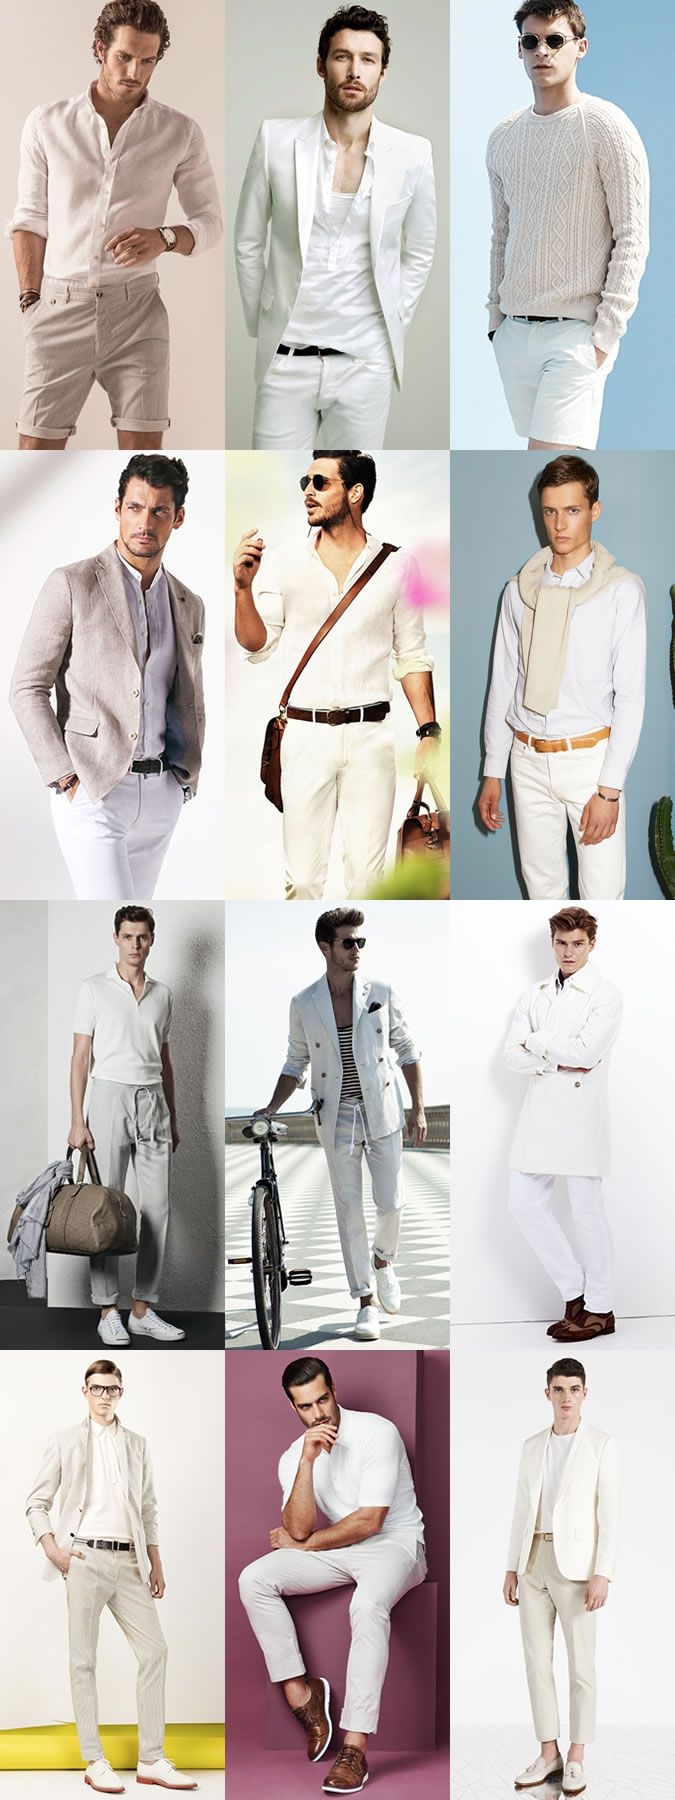 Ways To Wear White-On-White: Smart-Casual Lookbook Inspiration